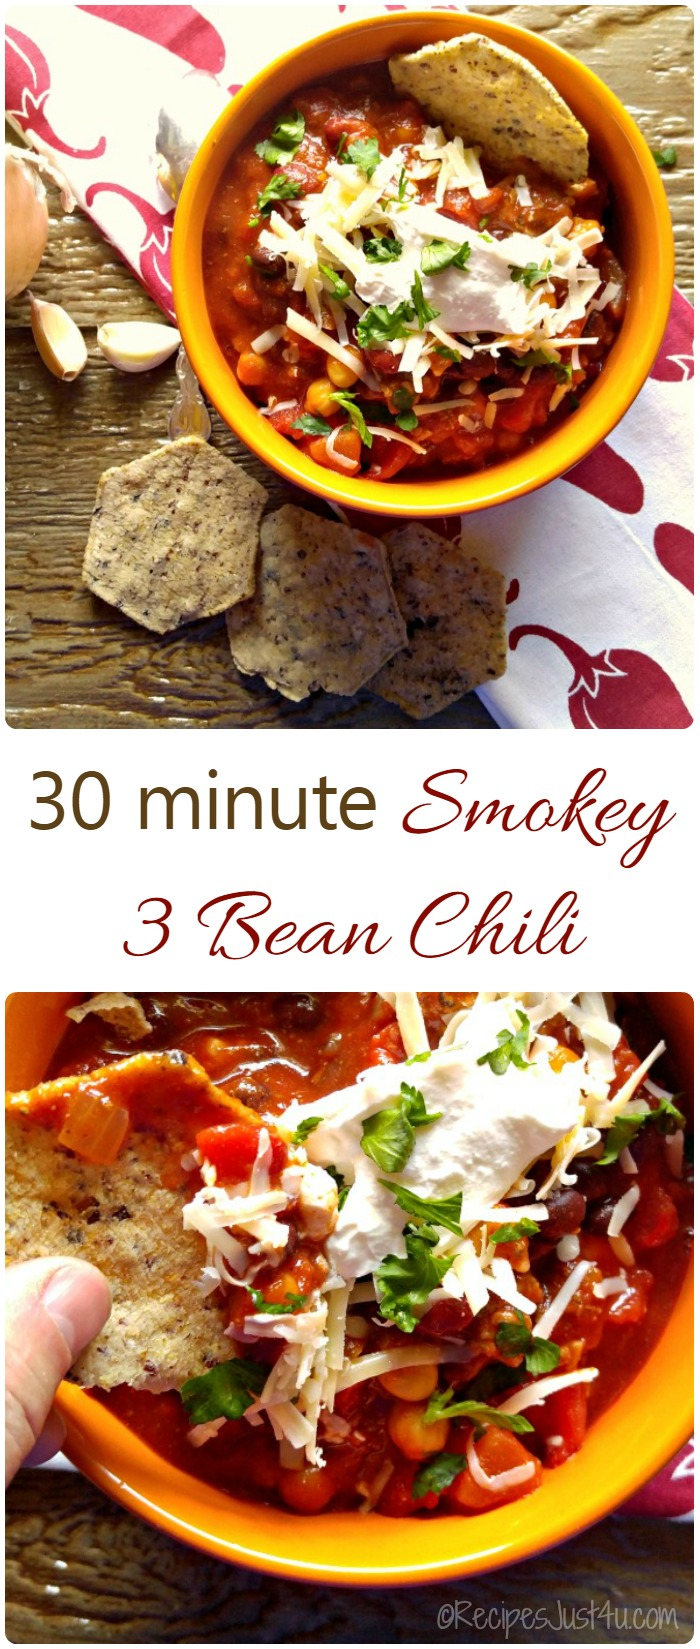 This Smokey 3 bean chili is ready in 30 minutes but tastes like you spent hours making it.  The dish is bursting at the seams with flavor.  recipesjust4u.com